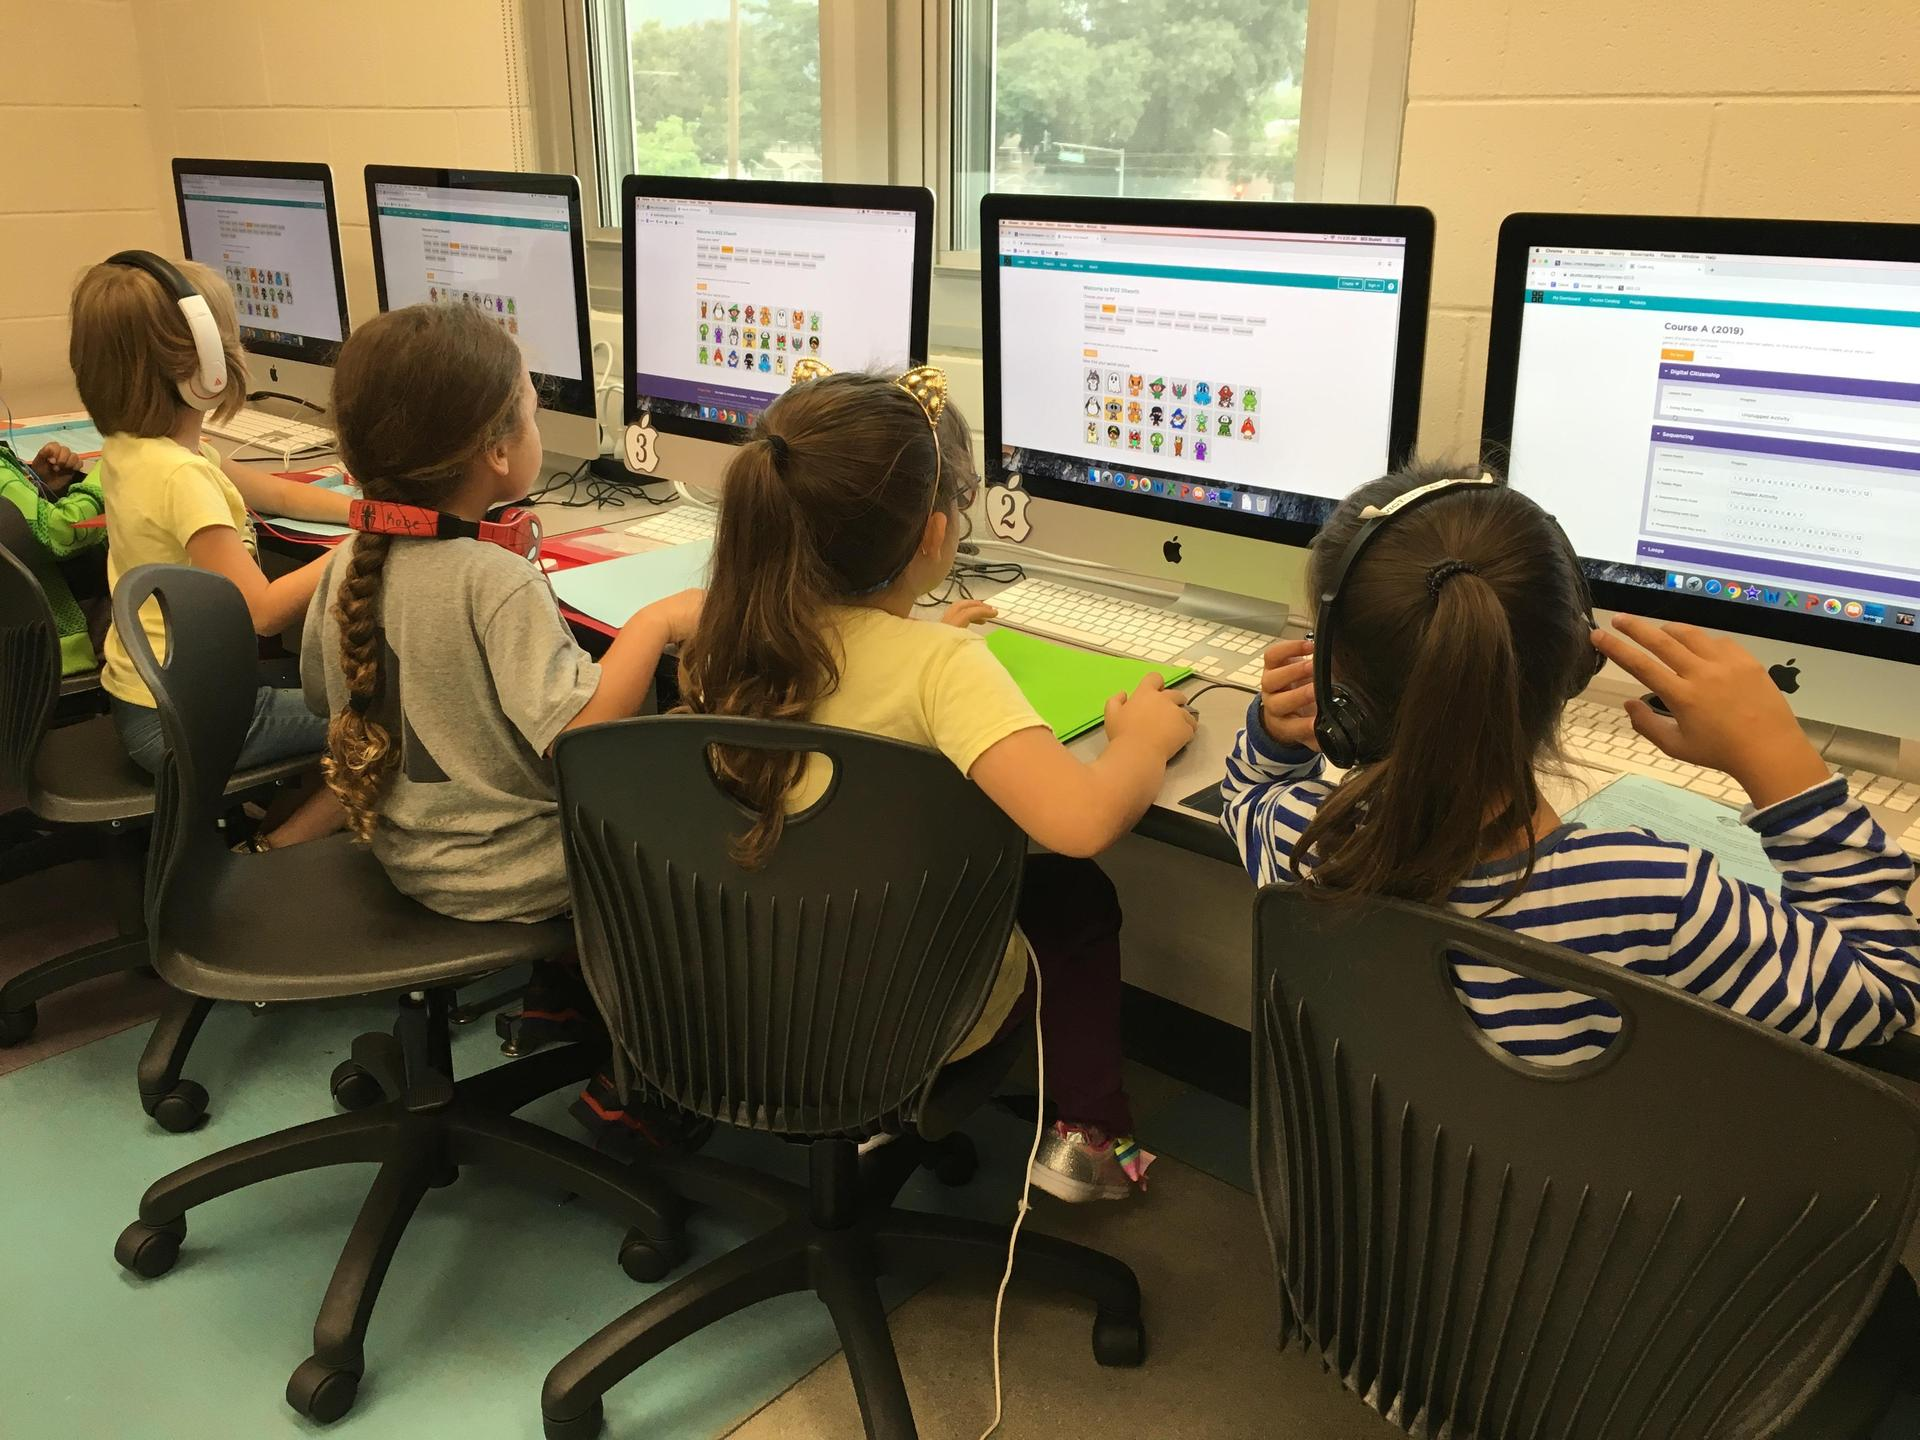 Students in Coding class